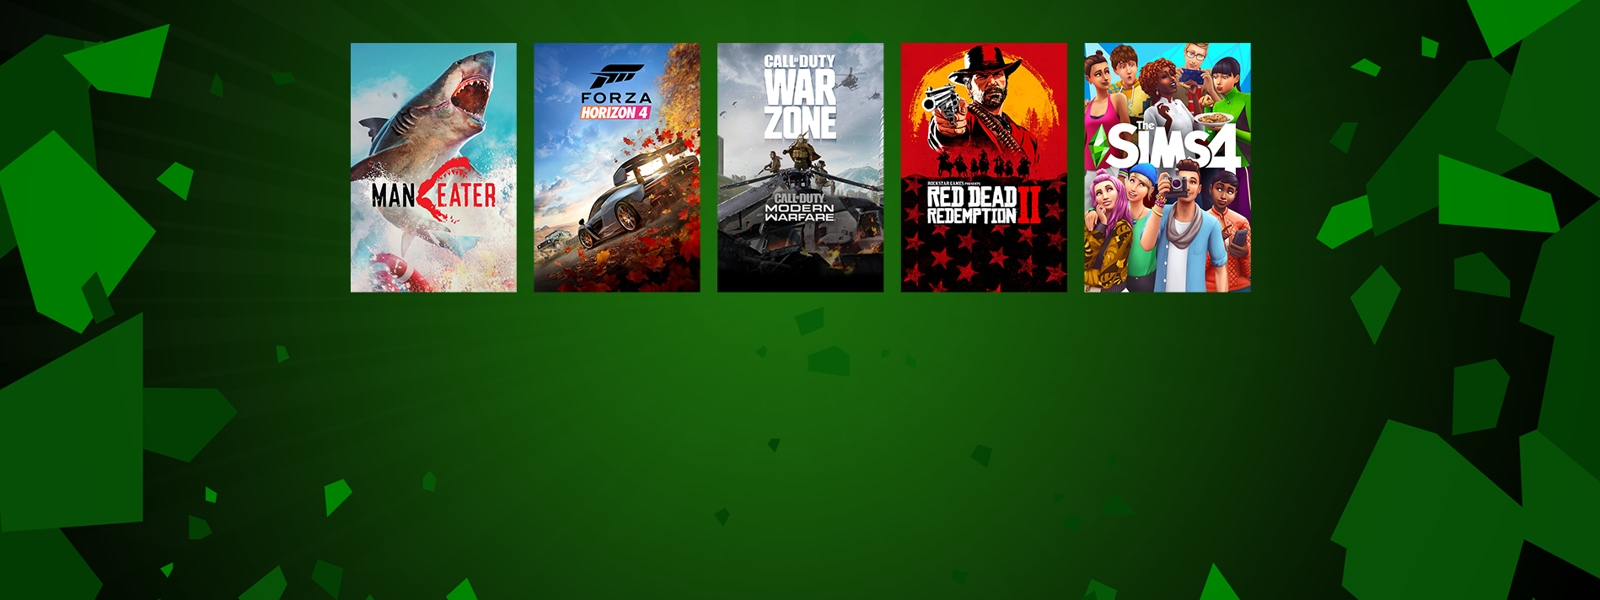 Man Eater, Forza Horizon 4, Call-Duty, Red Dead Redemption II, Sims 4